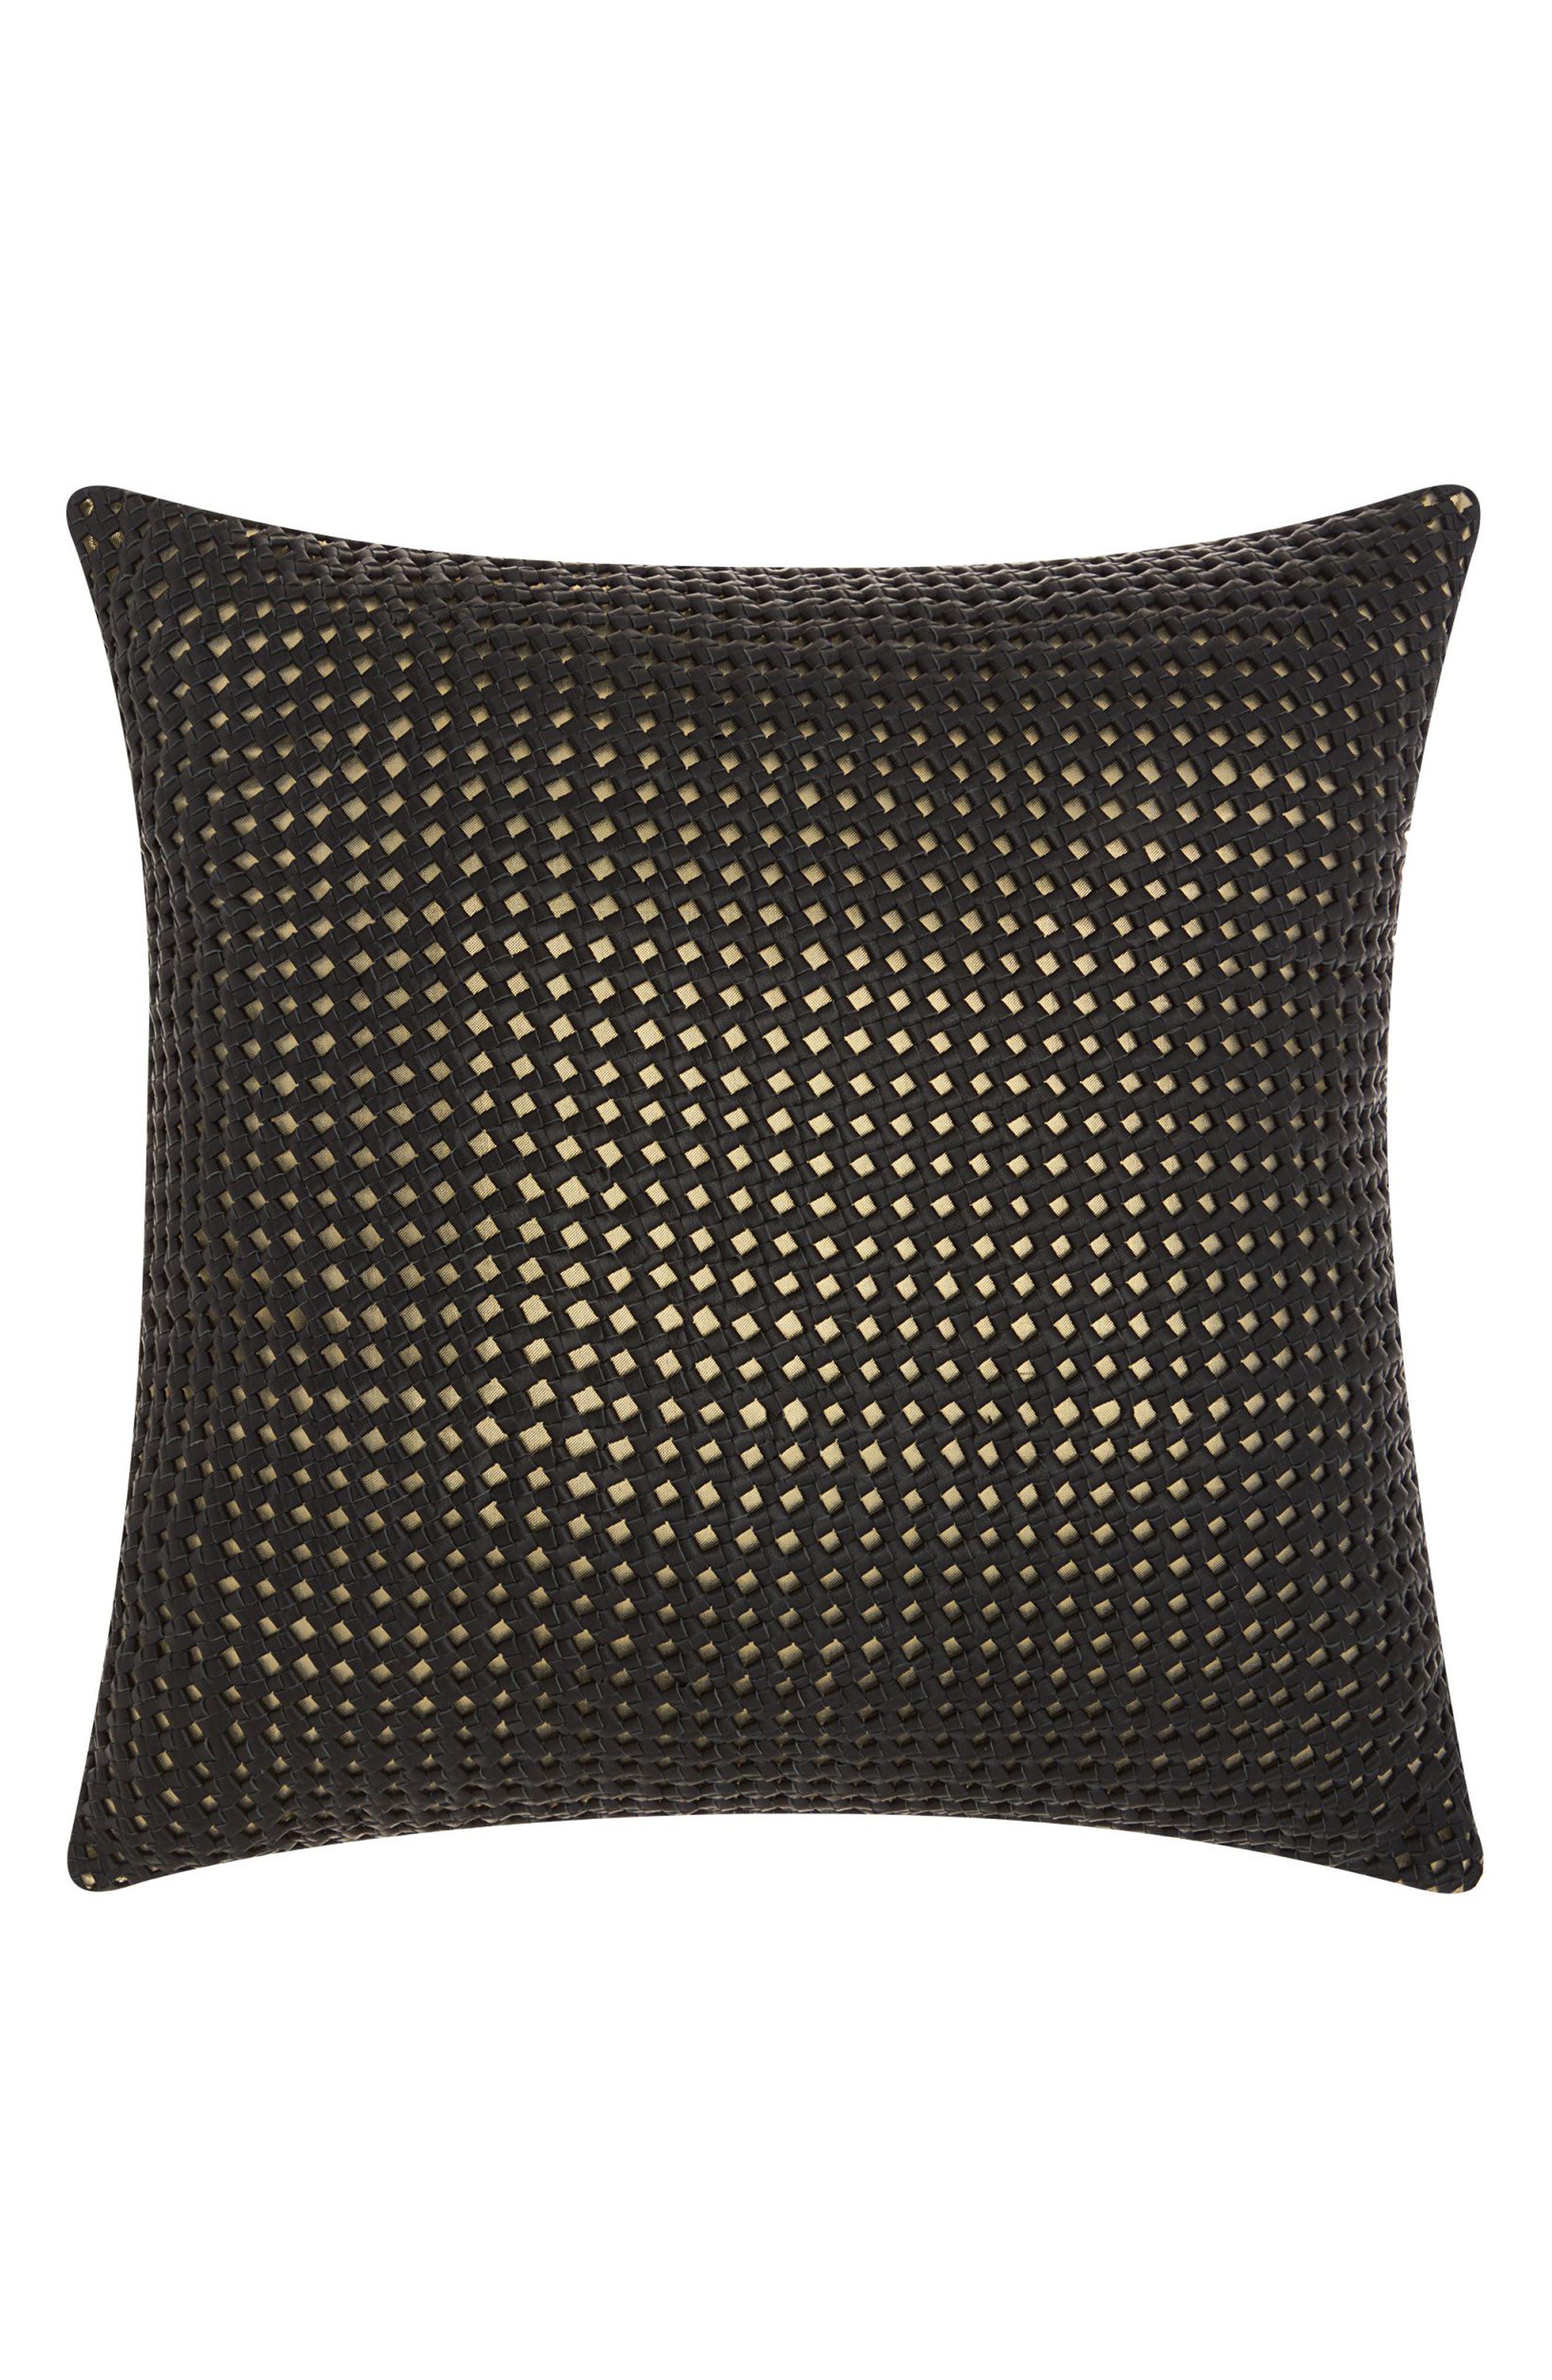 Woven Leather Accent Pillow,                         Main,                         color, Black